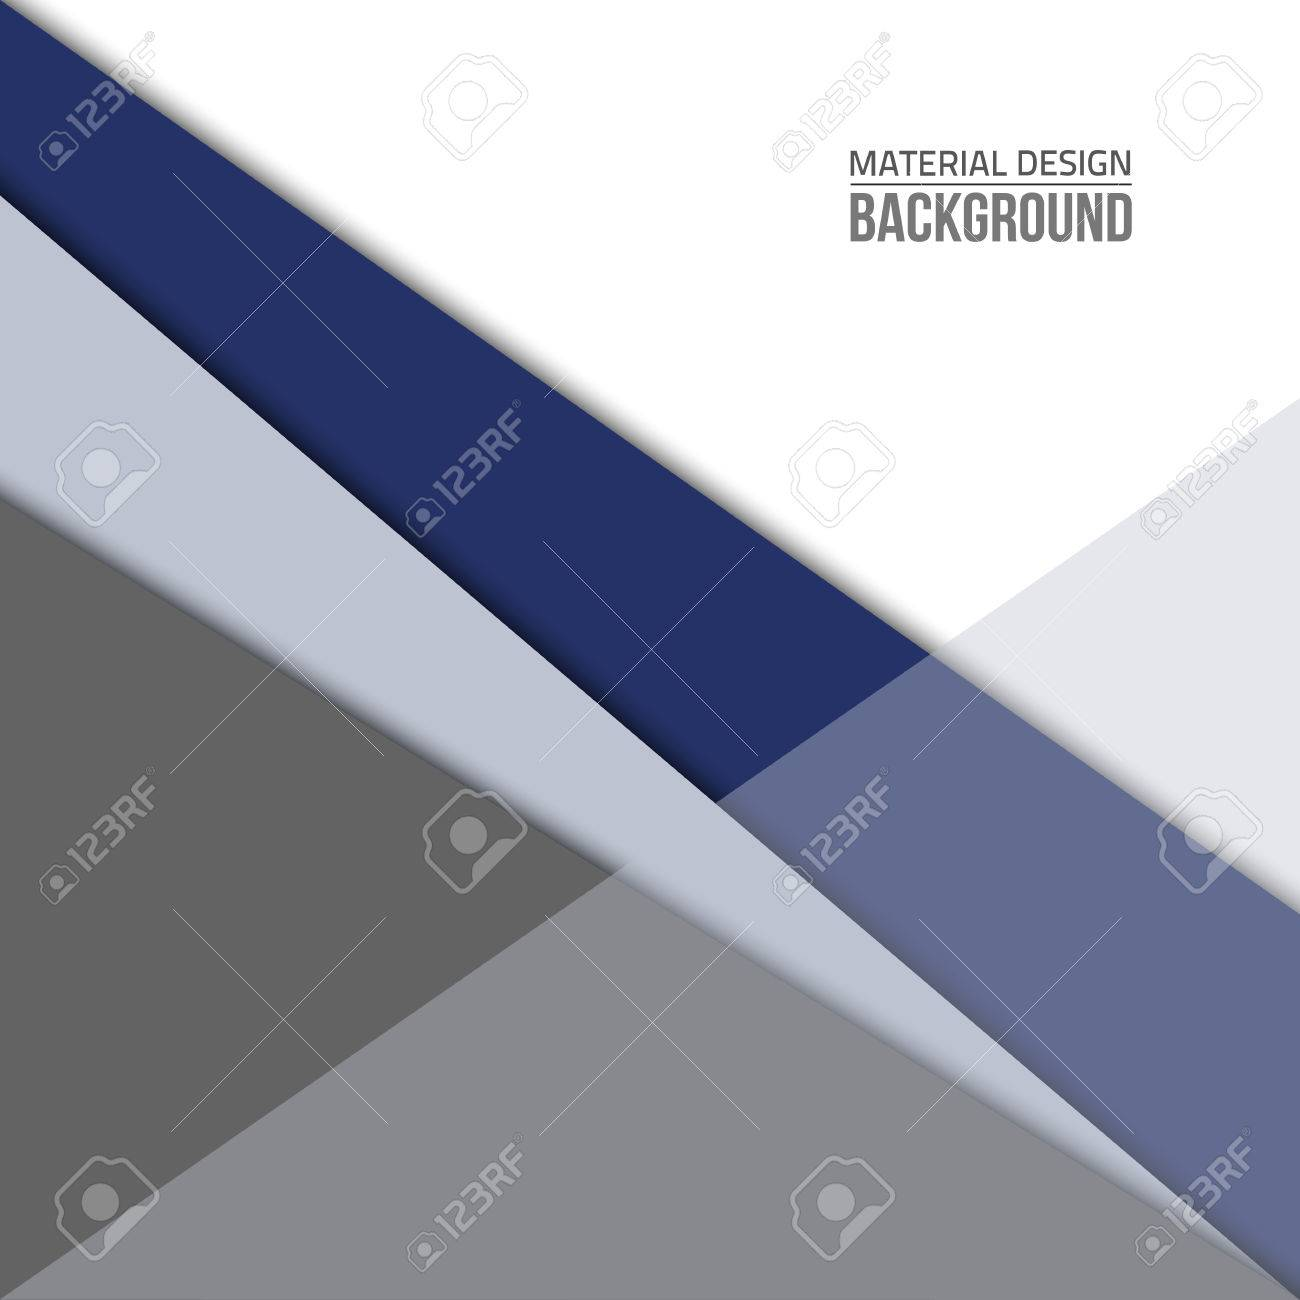 Gray Material Design Background Flat Template Fashion Background